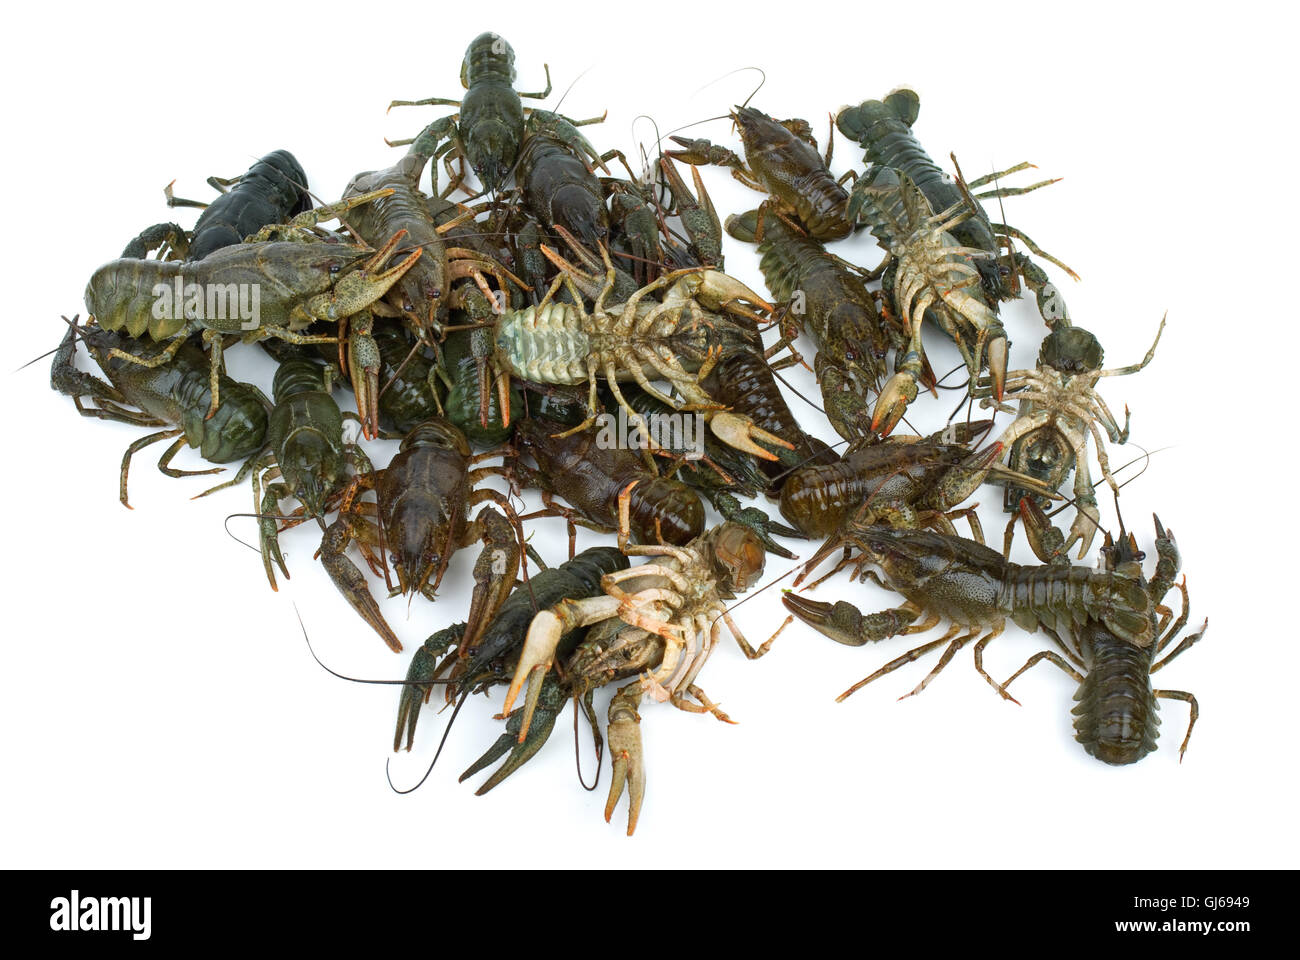 Pile of live crawfishes - Stock Image